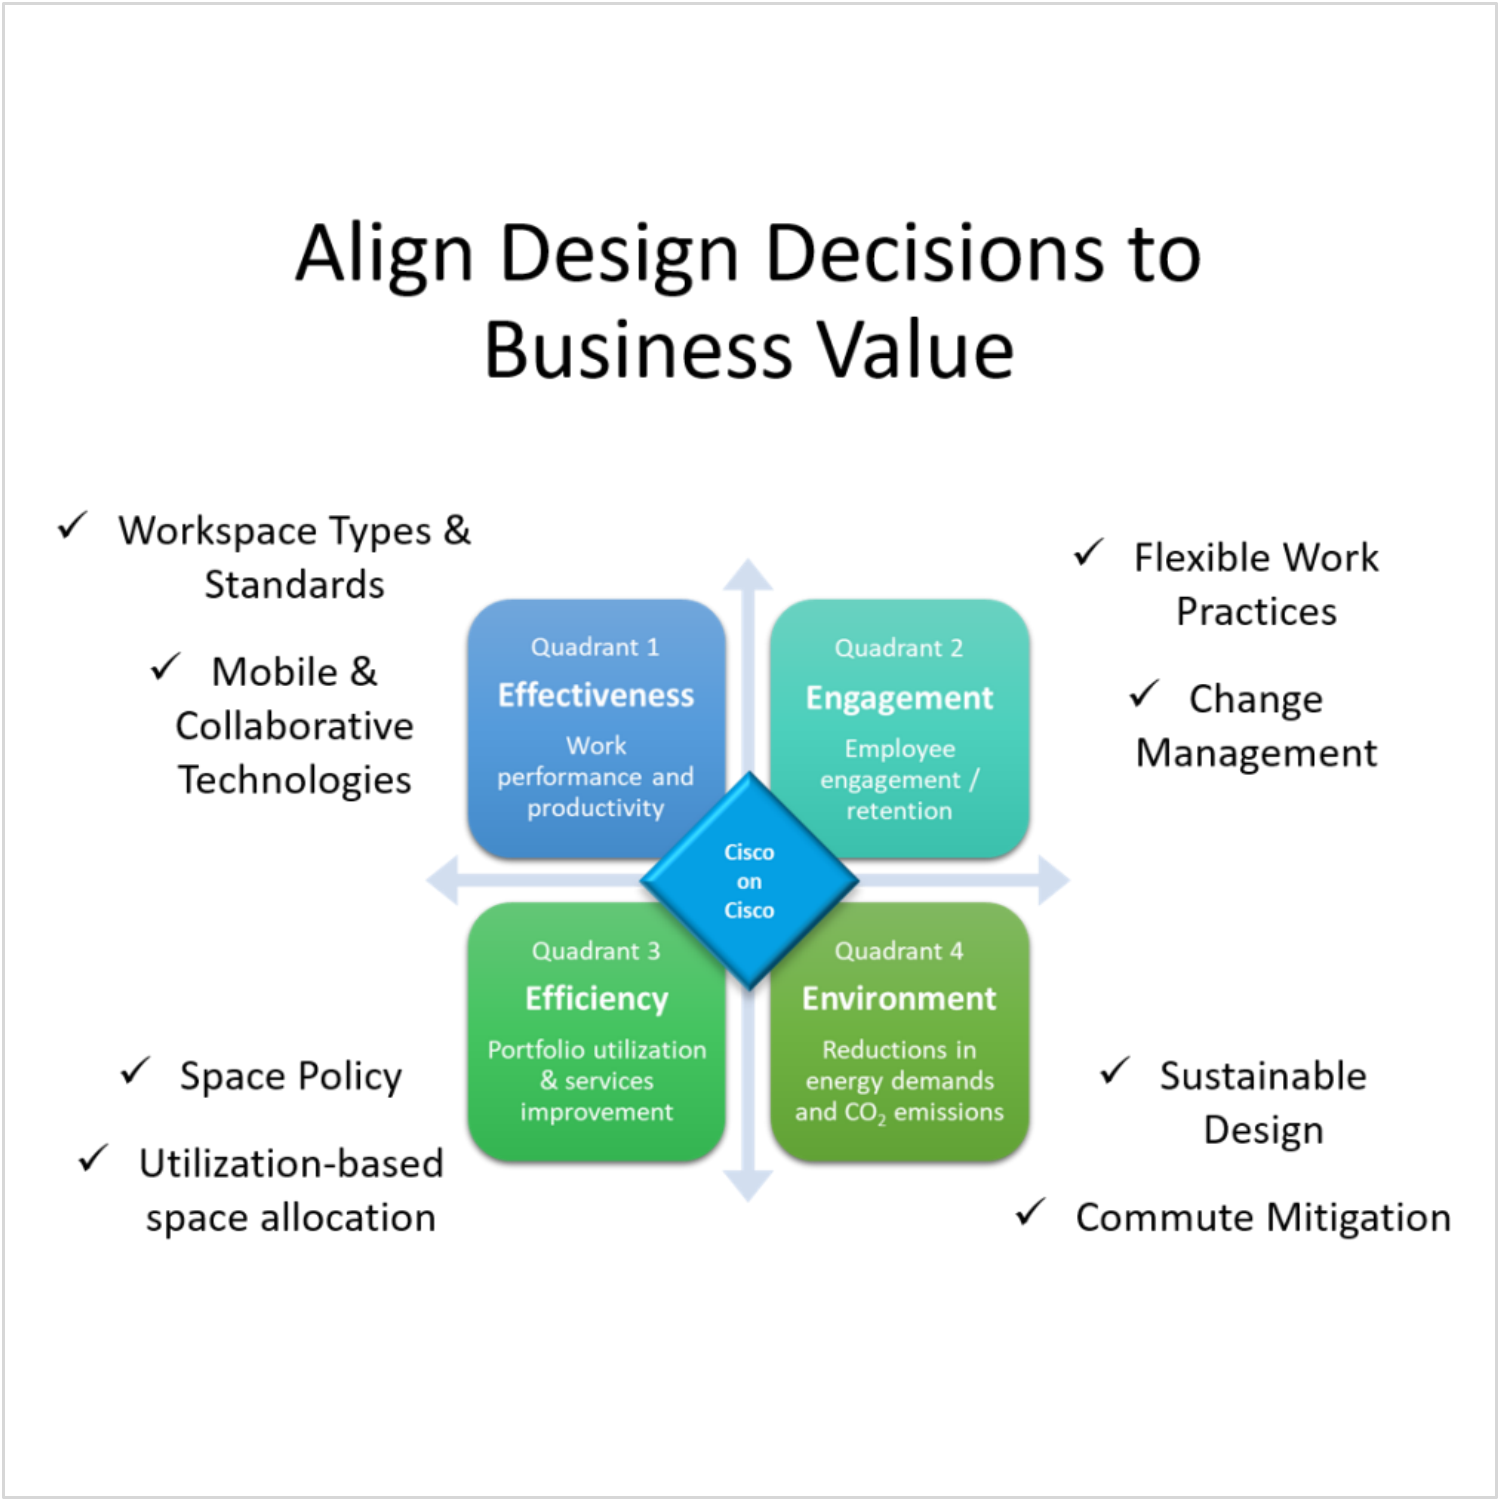 Client: Cisco. Aligning workplace design decisions to 4 quadrants of business value